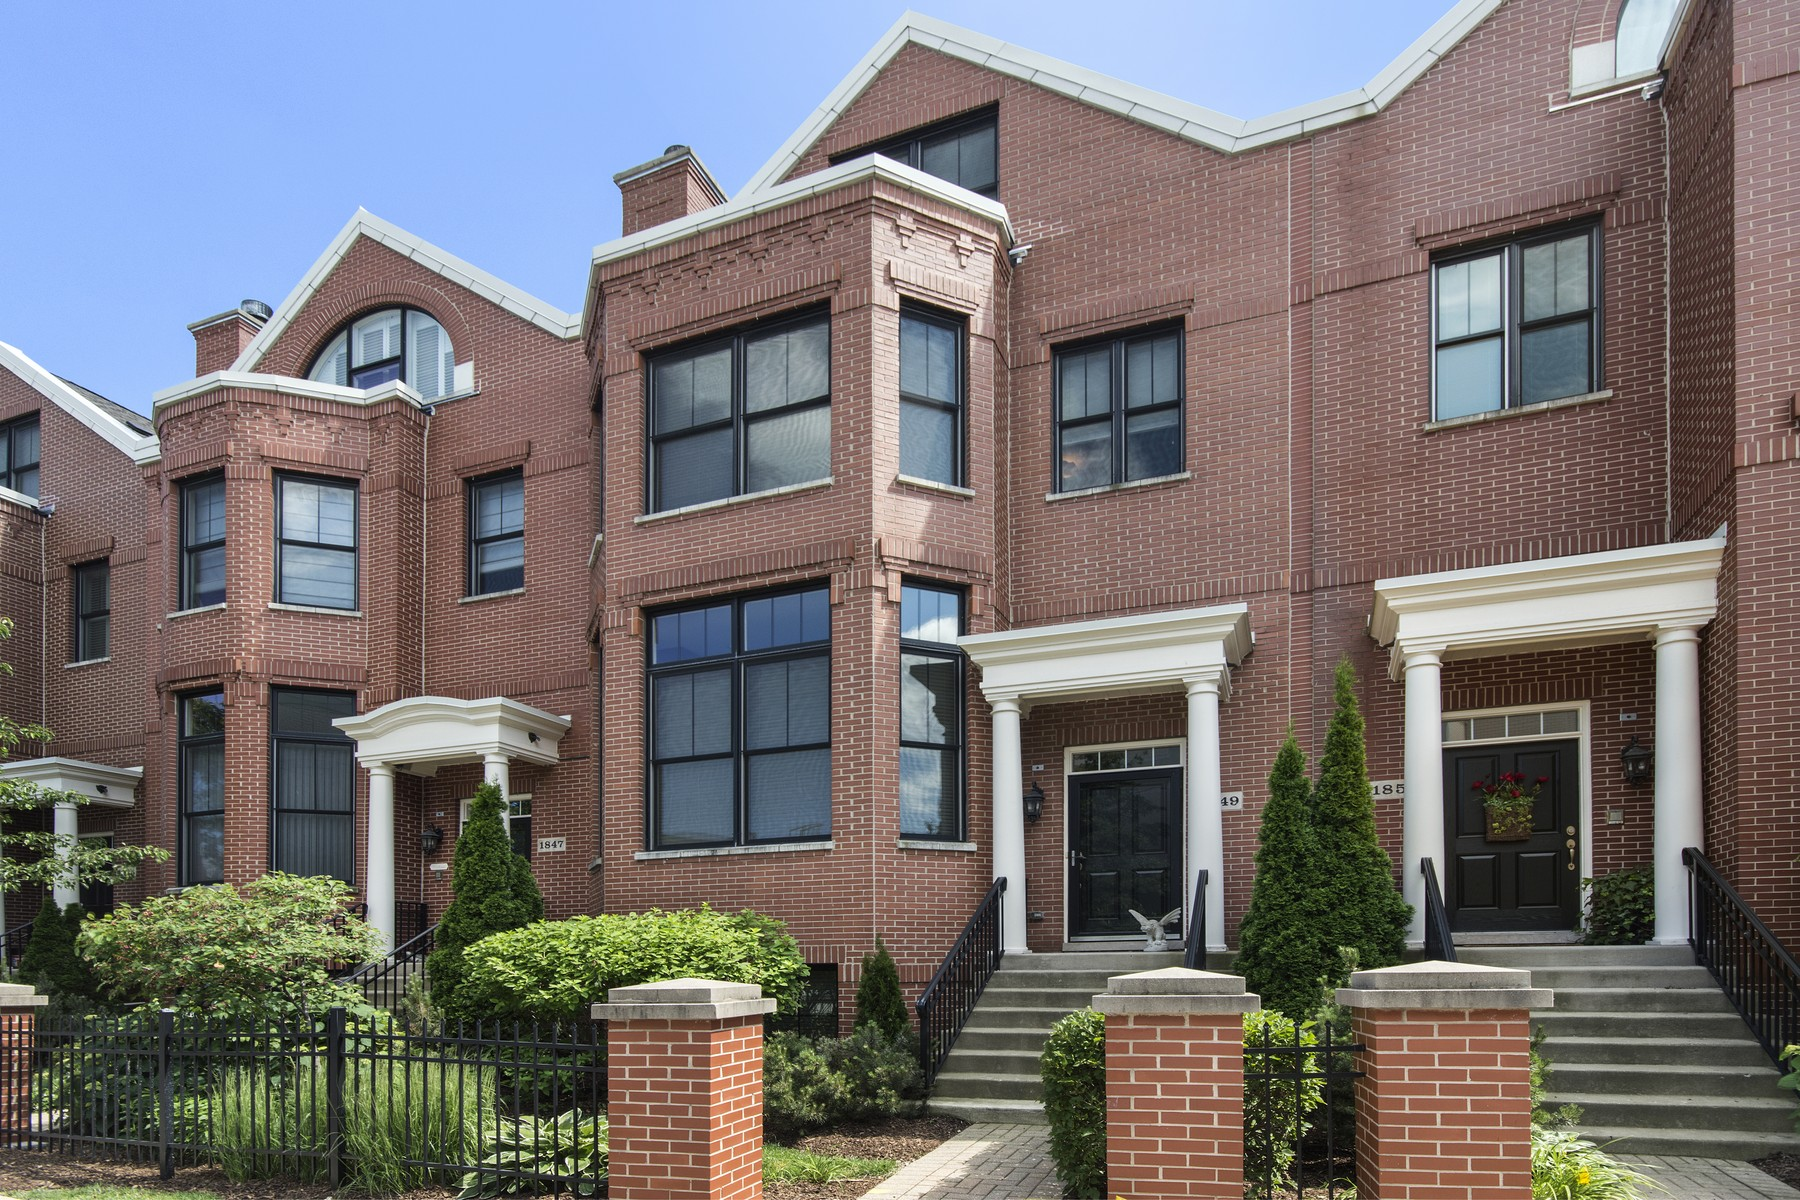 Таунхаус для того Продажа на Stately Brick Town Home With Many Custom Features 1849 Admiral Court Glenview, Иллинойс, 60026 Соединенные Штаты